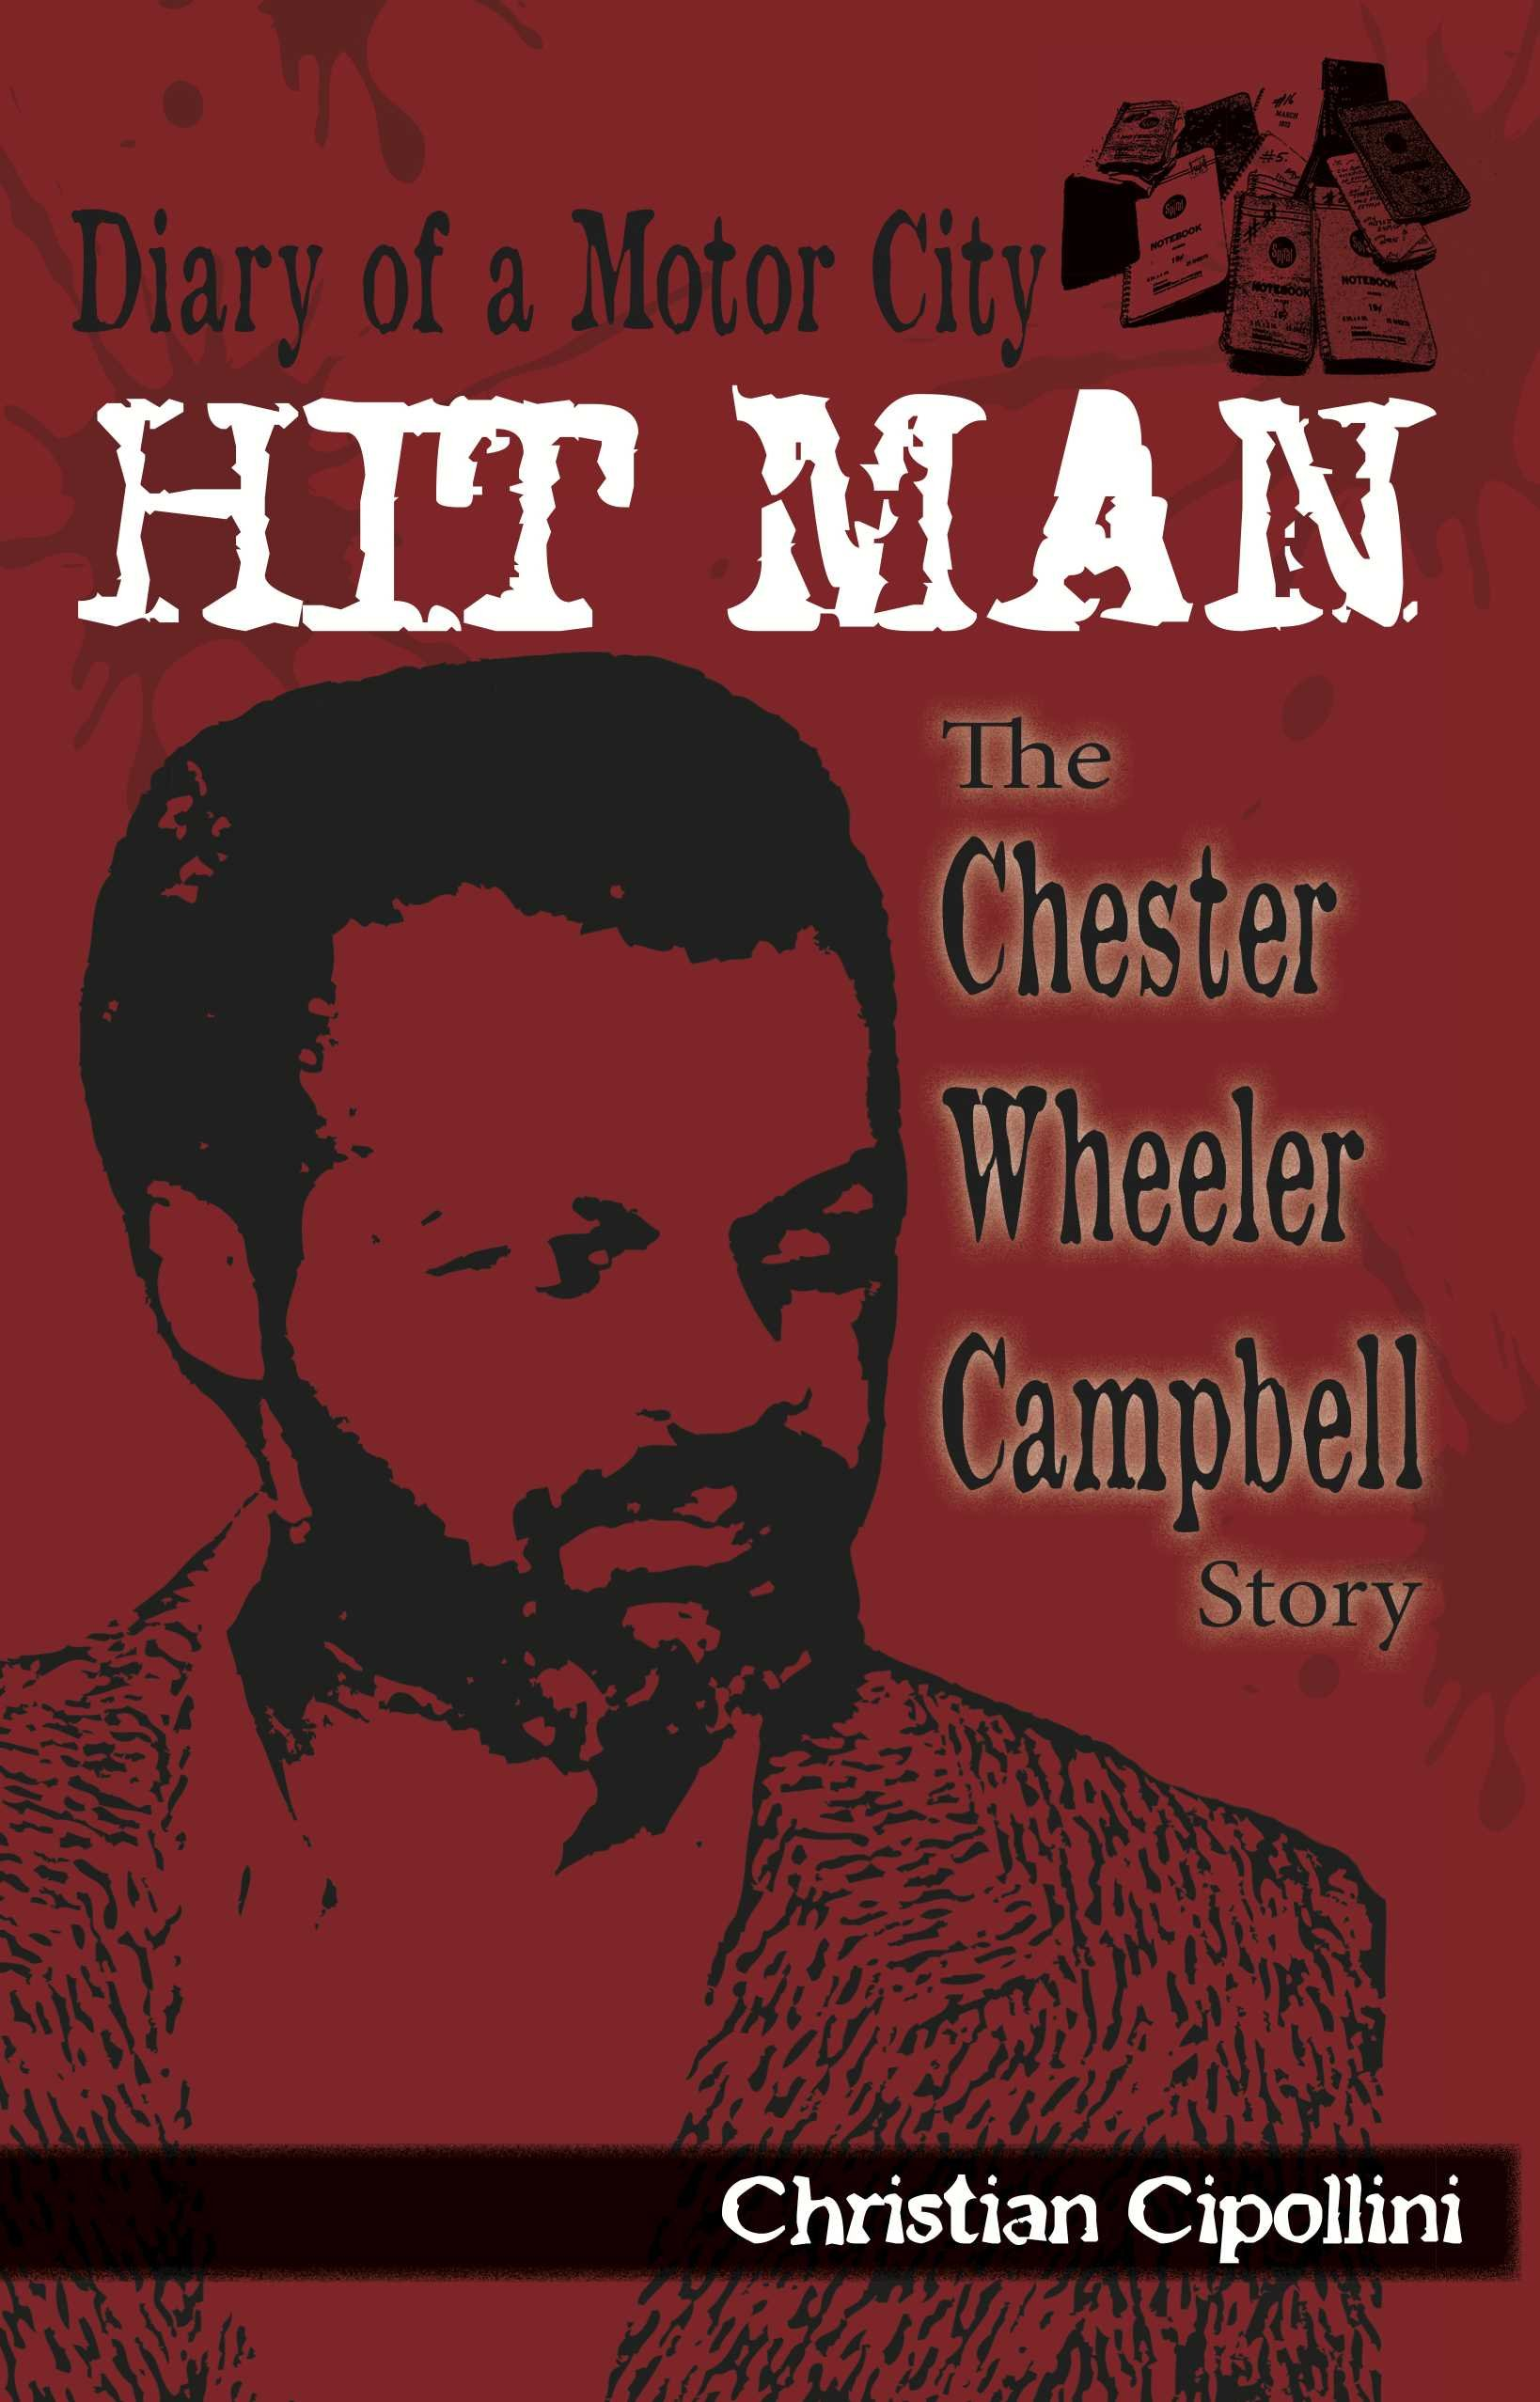 Diary of a Motor City Hit Man: The Chester Wheeler Campbell Story:  Christian Cipollini: 9780985244064: Amazon.com: Books